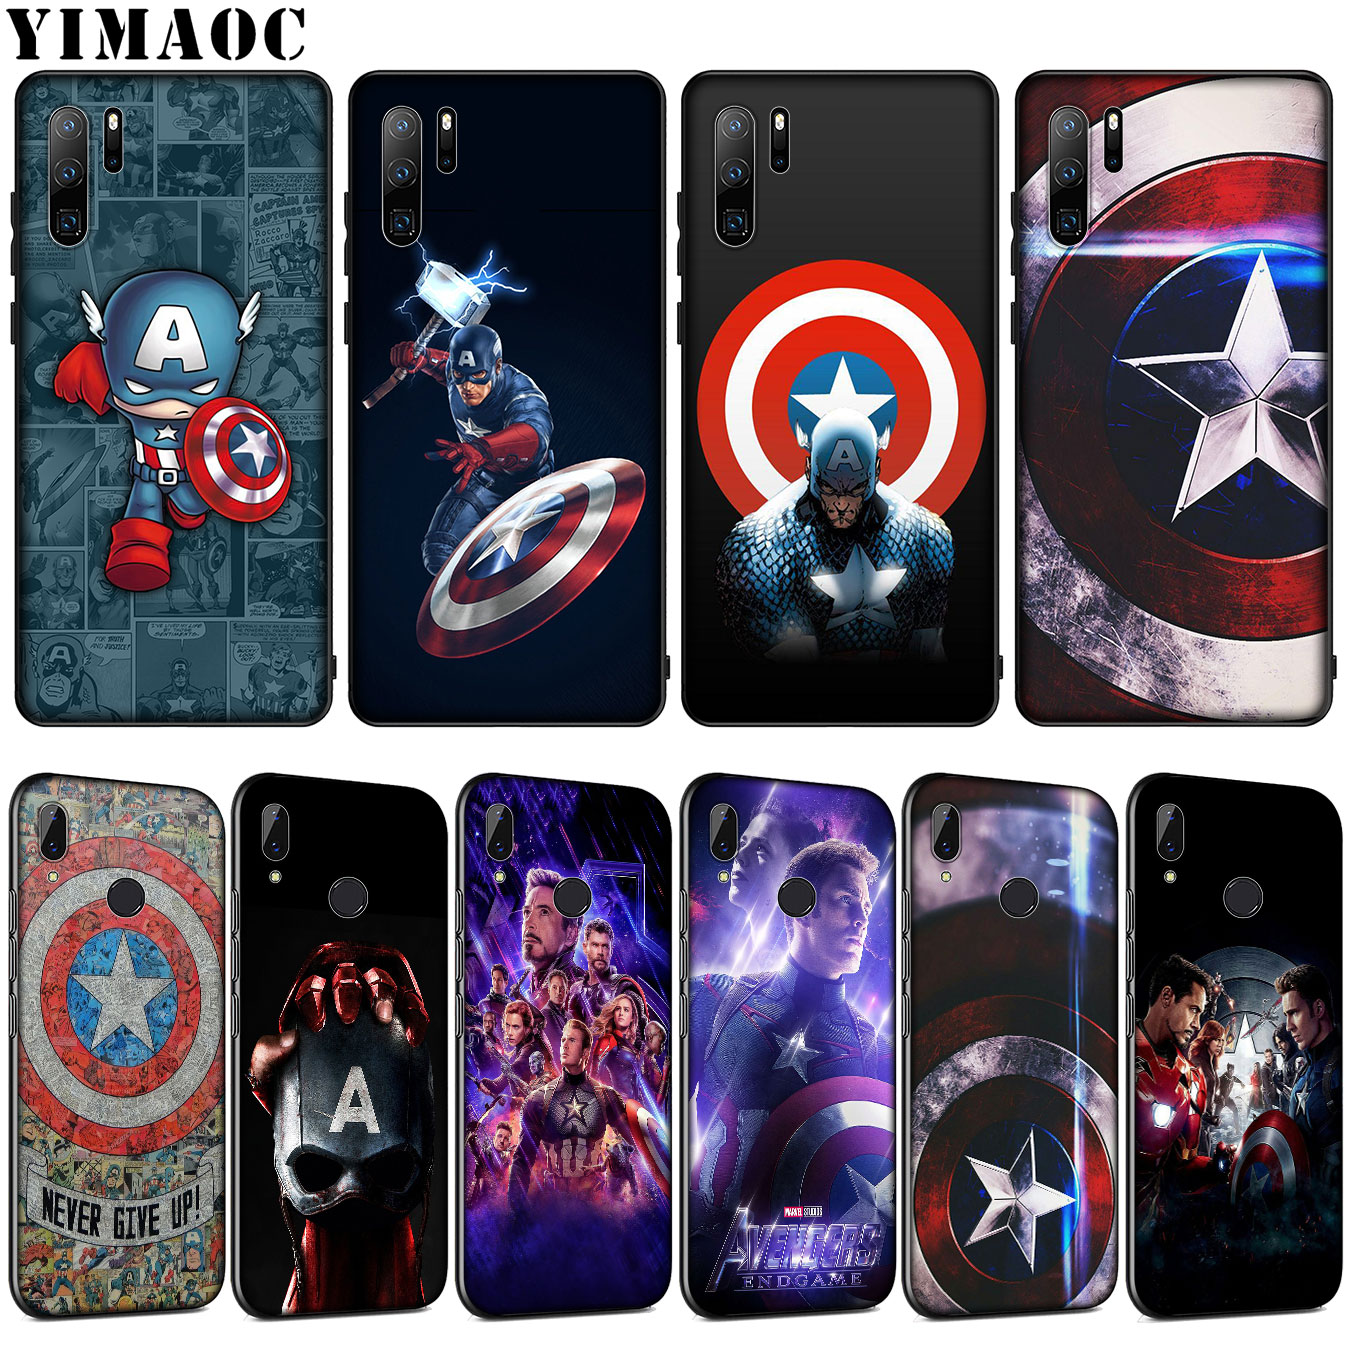 YIMAOC <font><b>Marvel</b></font> Captain America shield Soft Silicone Case for <font><b>Huawei</b></font> P30 P20 Pro <font><b>P10</b></font> P9 <font><b>Lite</b></font> Mini 2017 2016 <font><b>Cover</b></font> P Smart Z 2019 image